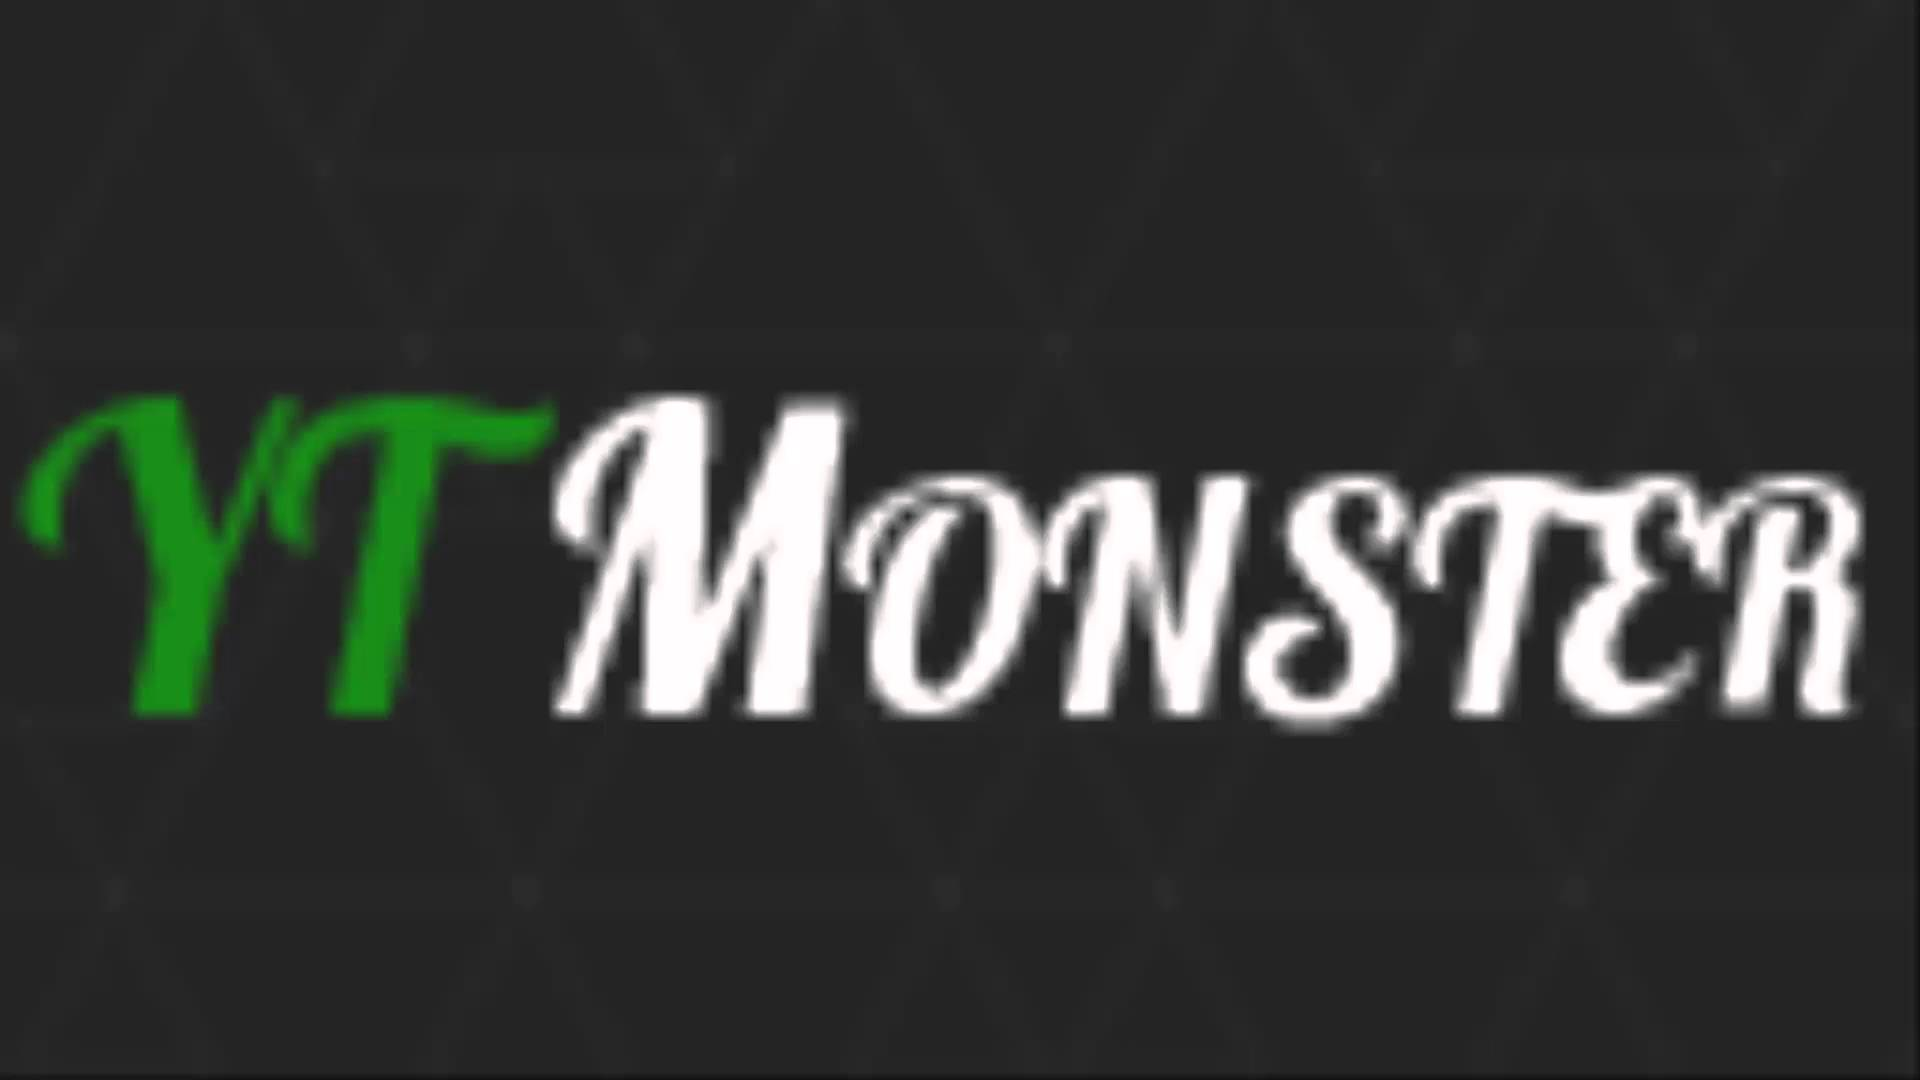 I need ytmonster net bot